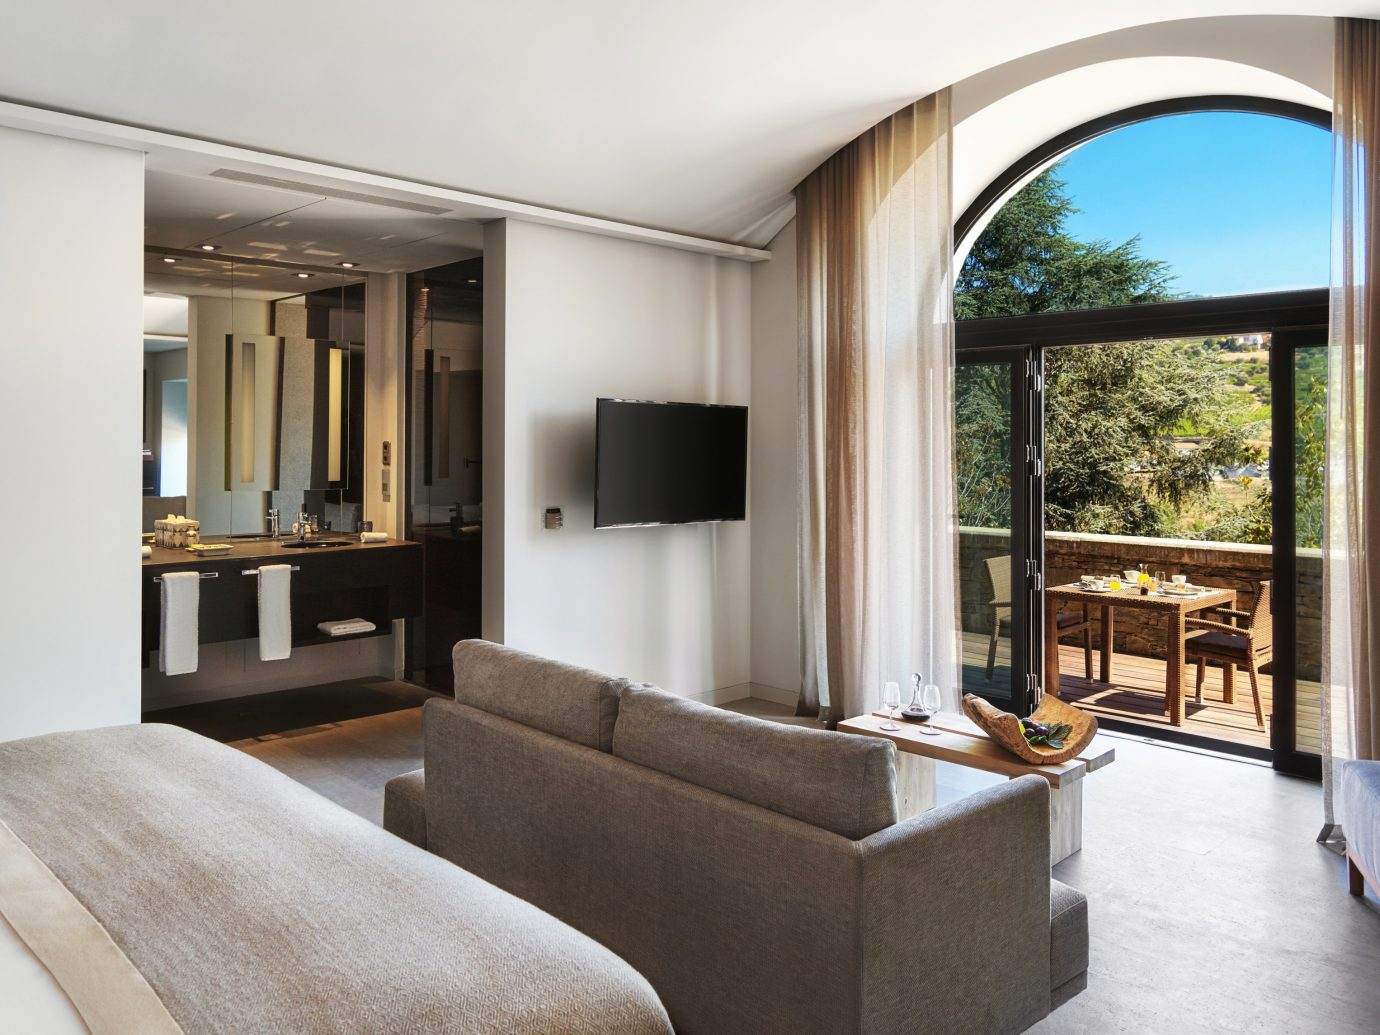 bedroom at where Six Senses Duoro Valley